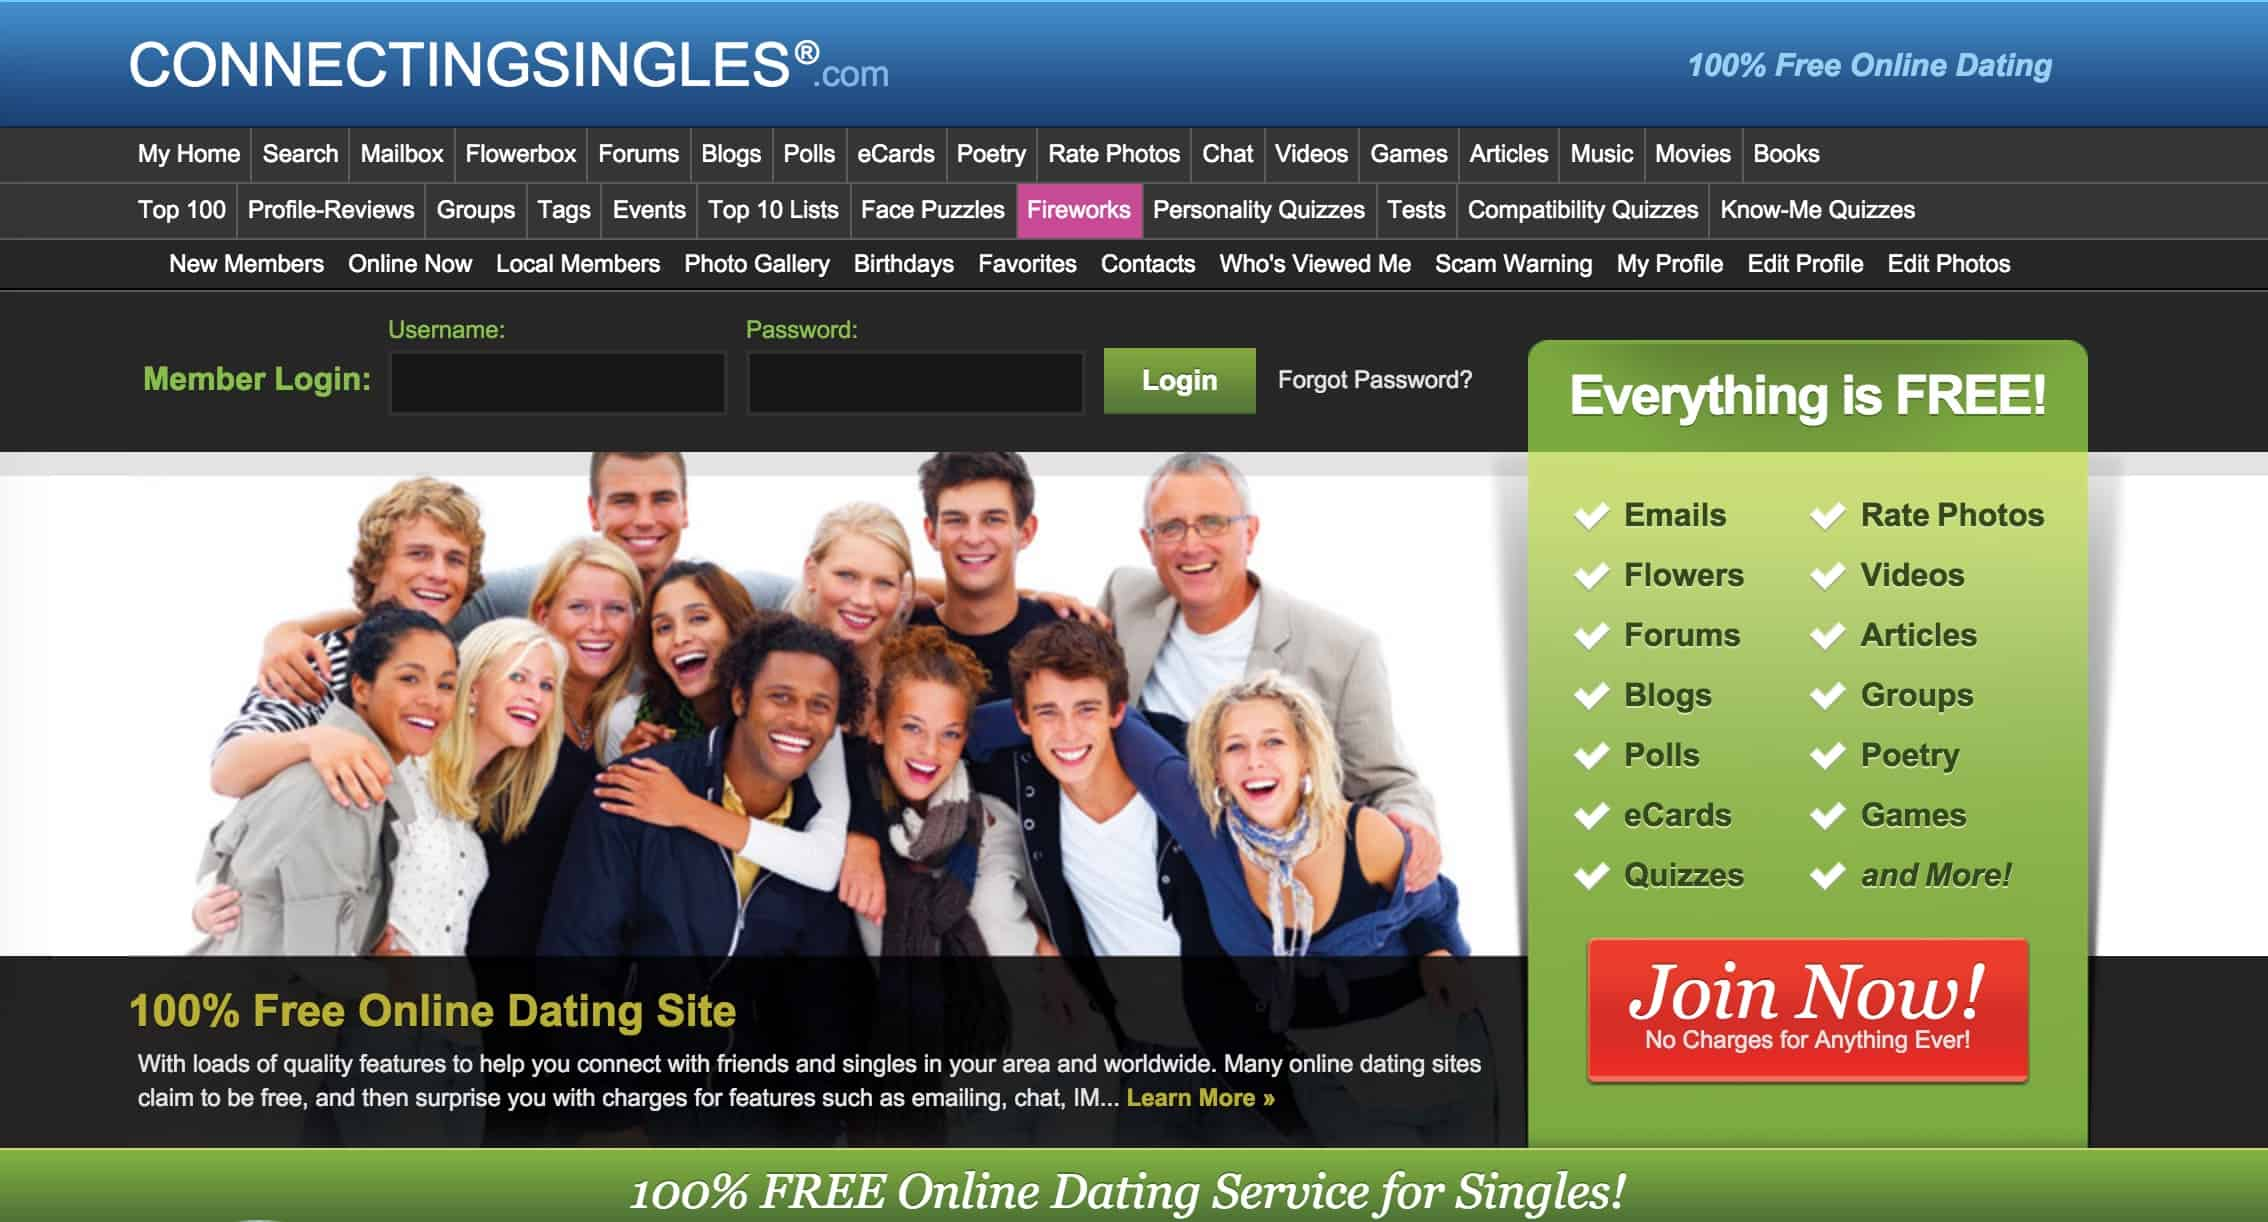 free online personals in wilberforce Free on line personals - do you believe in dating online if the answer is yes, sign on this site and find love of your life or one night love affair.